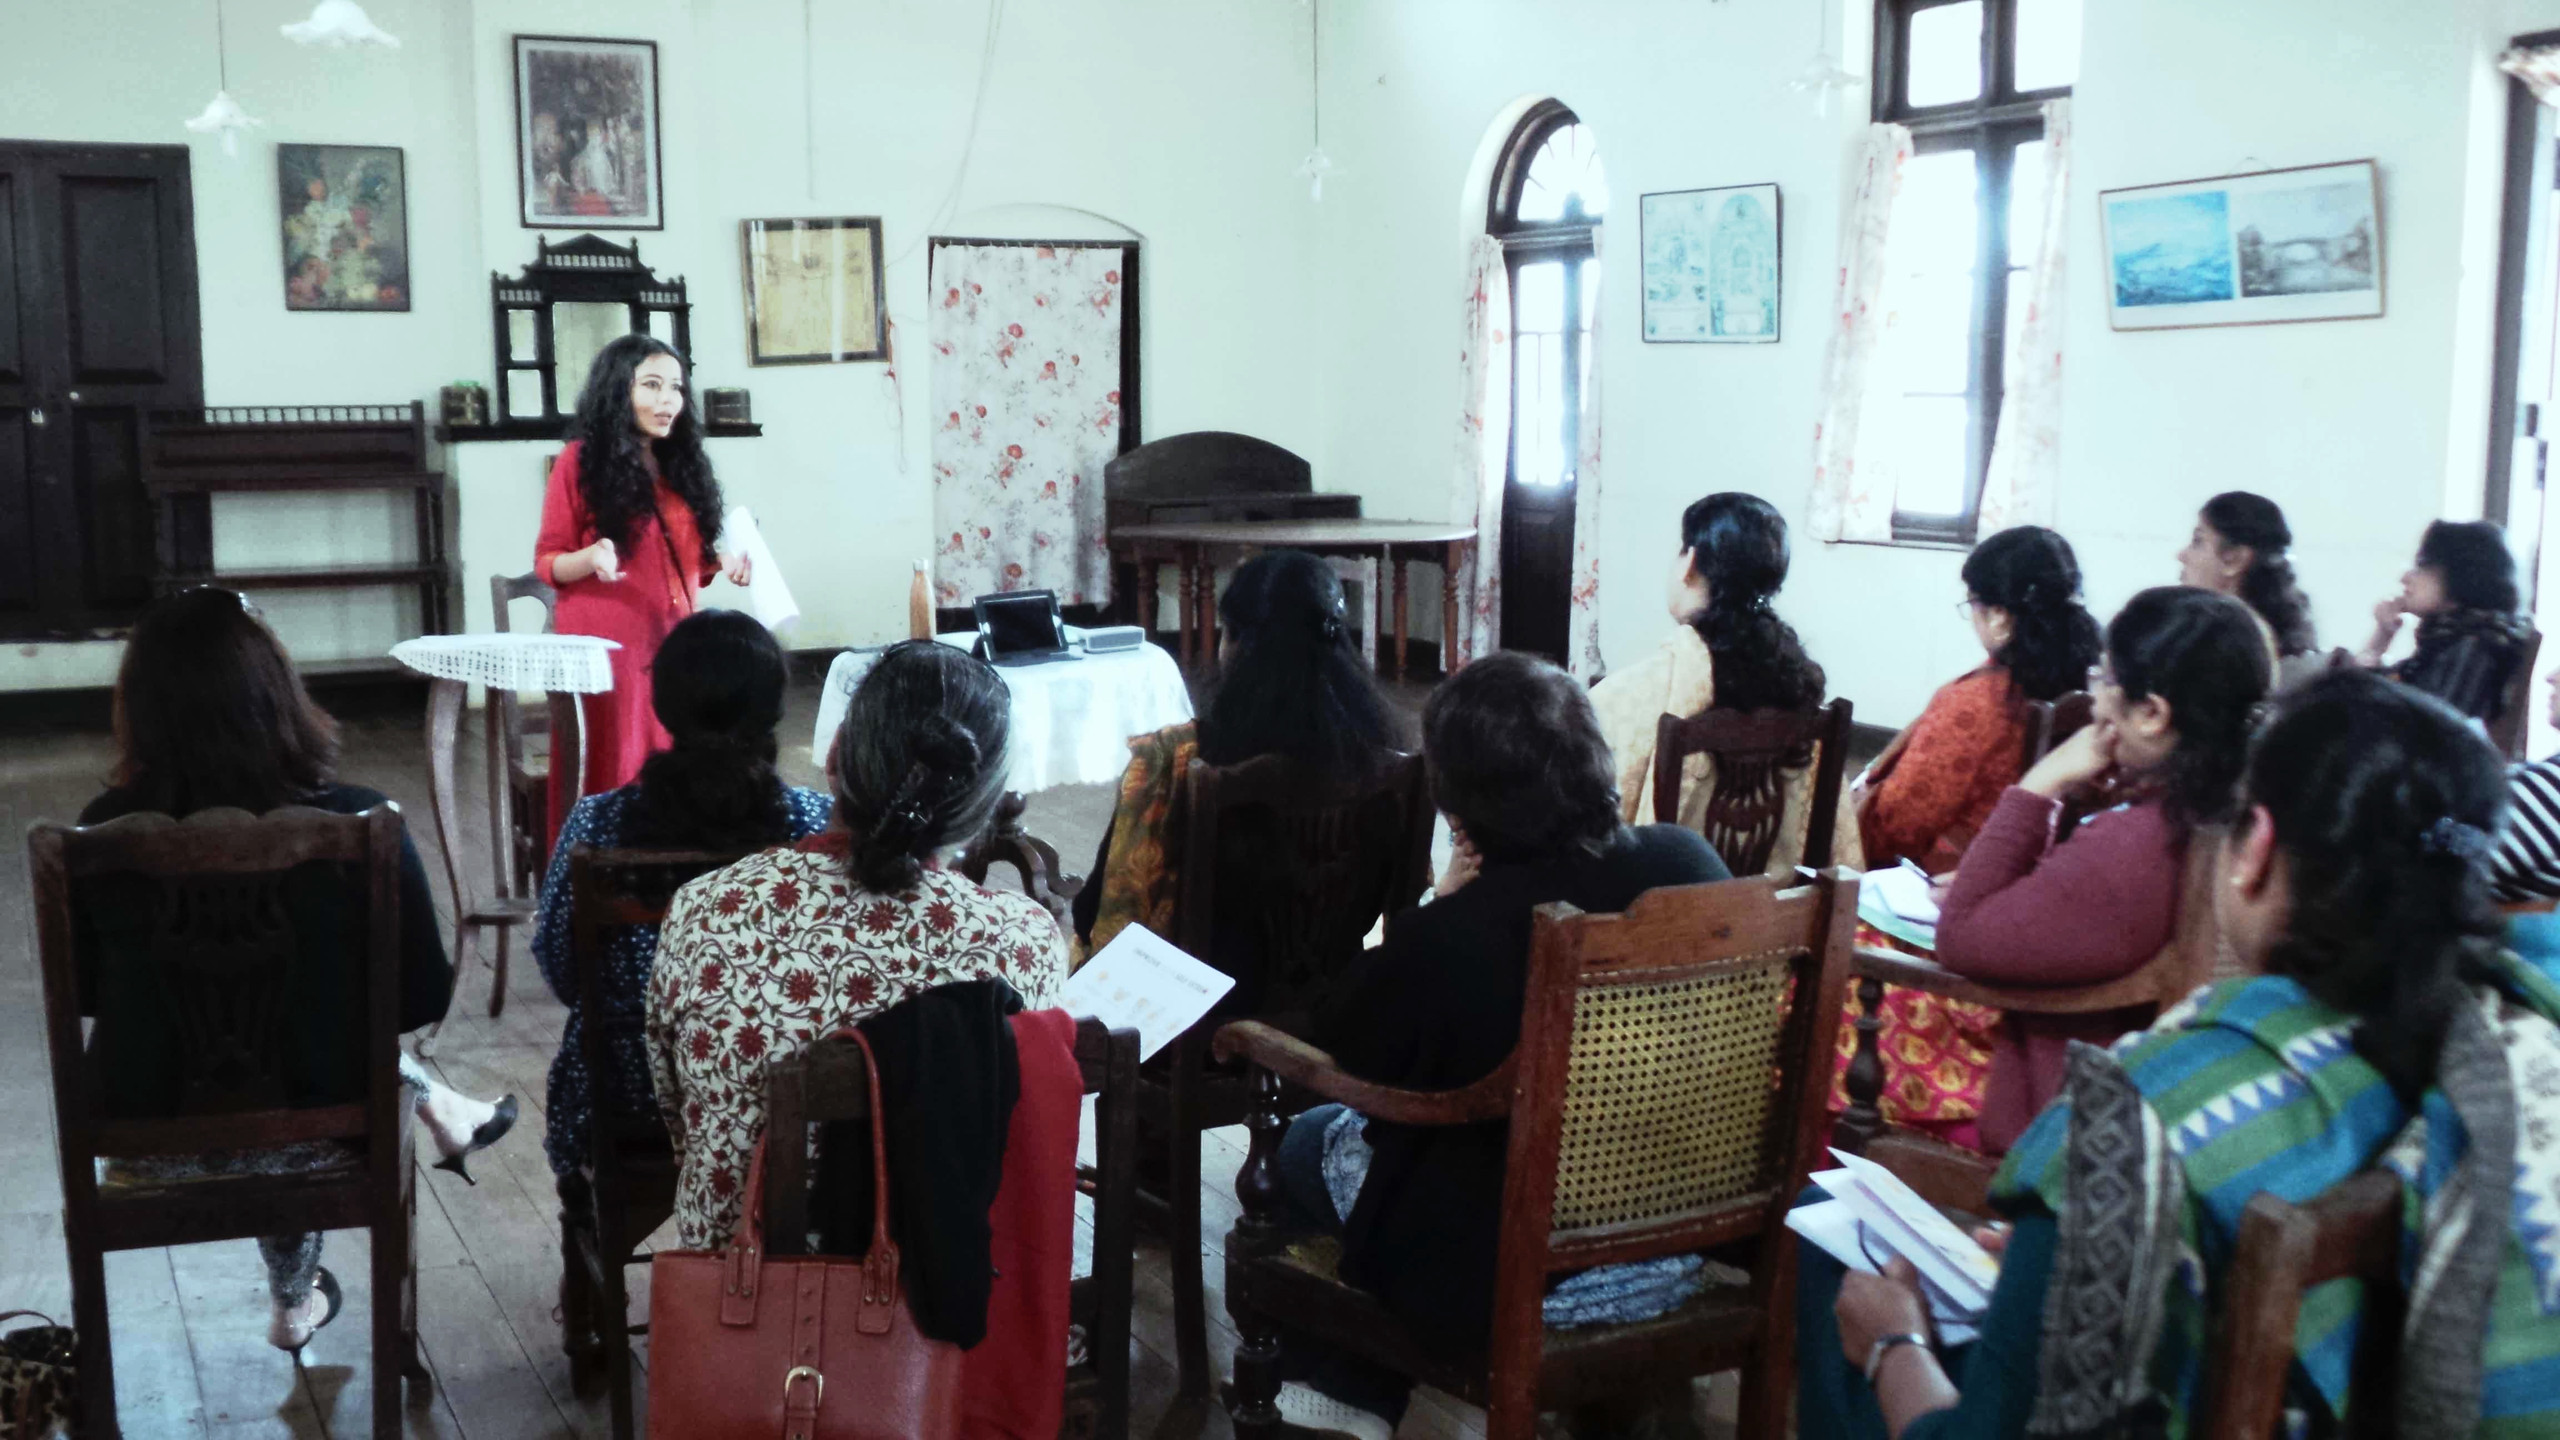 This is one of the series of Workshops conducted by Bindiya Murgai from Healing Hideaway and Dr. Sheela Nambiar from TFL. Bindiya focuses on the mental wellness and psychological part, while Sheela talks about the physical fitness aspect.